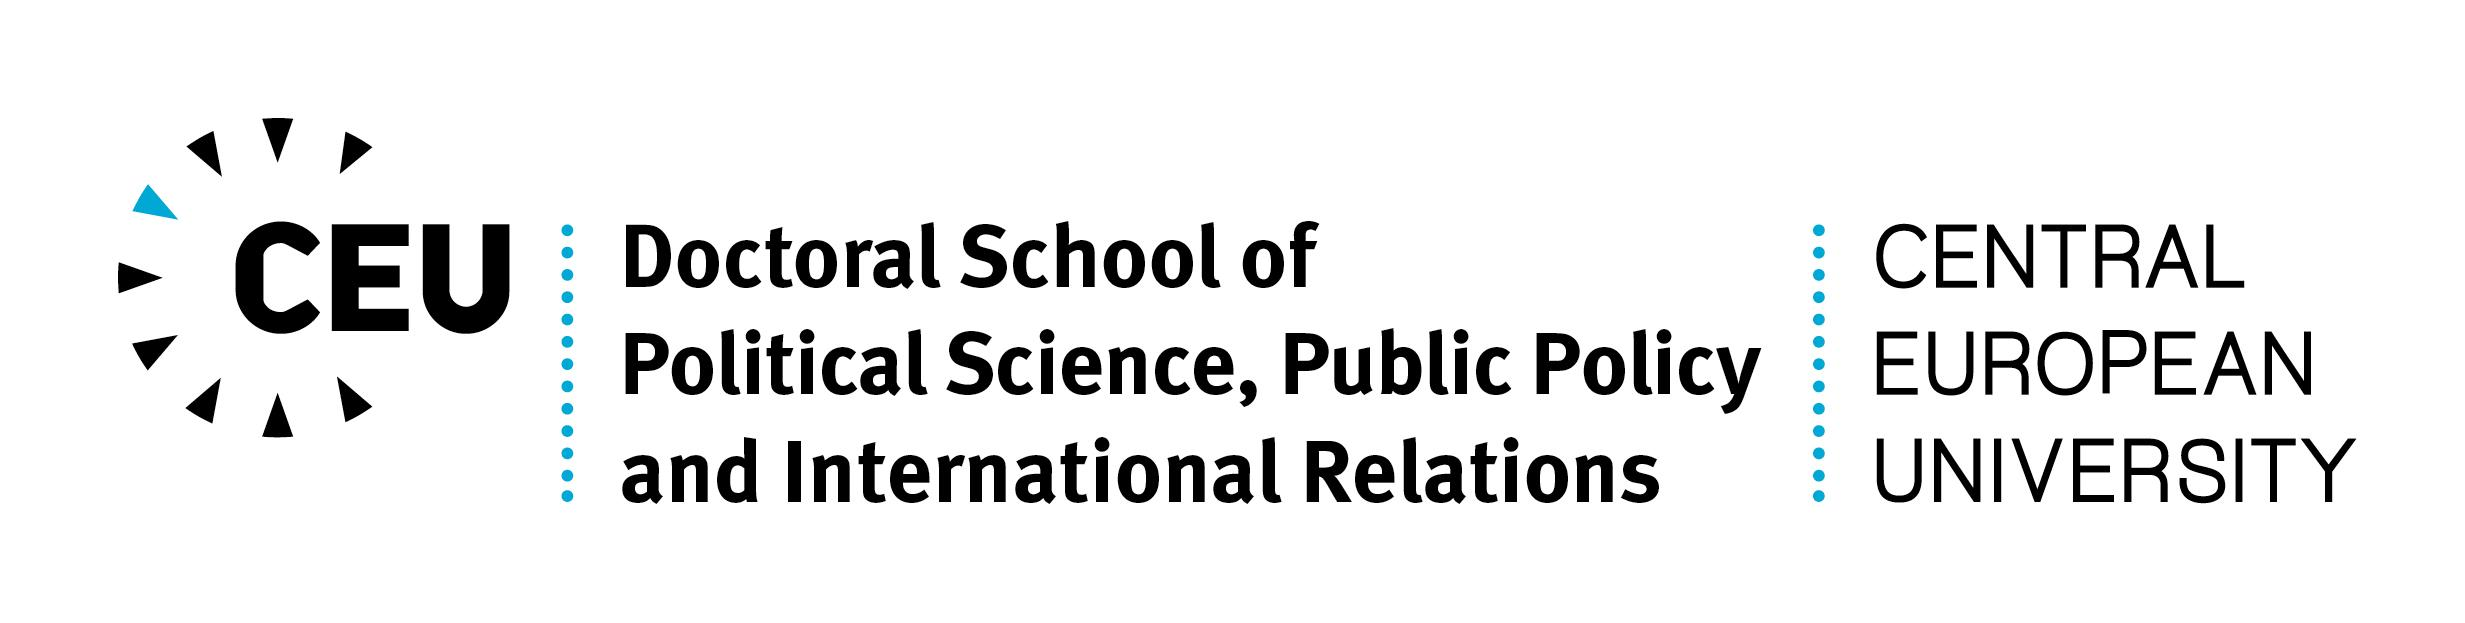 CEU Doctoral School of Political Science, Public Policy and International Relations